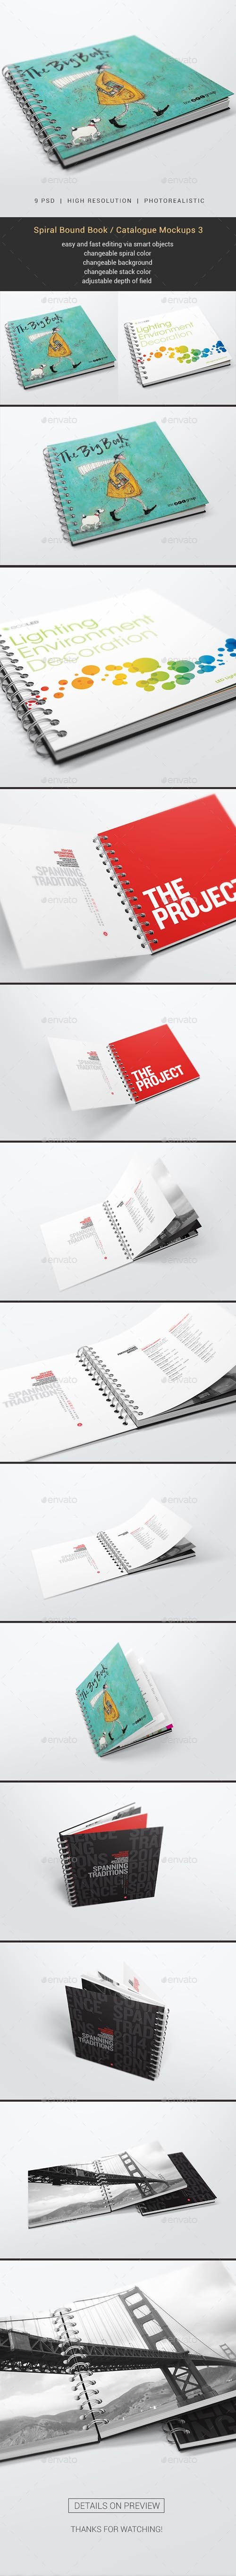 GR -  Spiral Bound Book / Catalogue Mockups 3 20132524